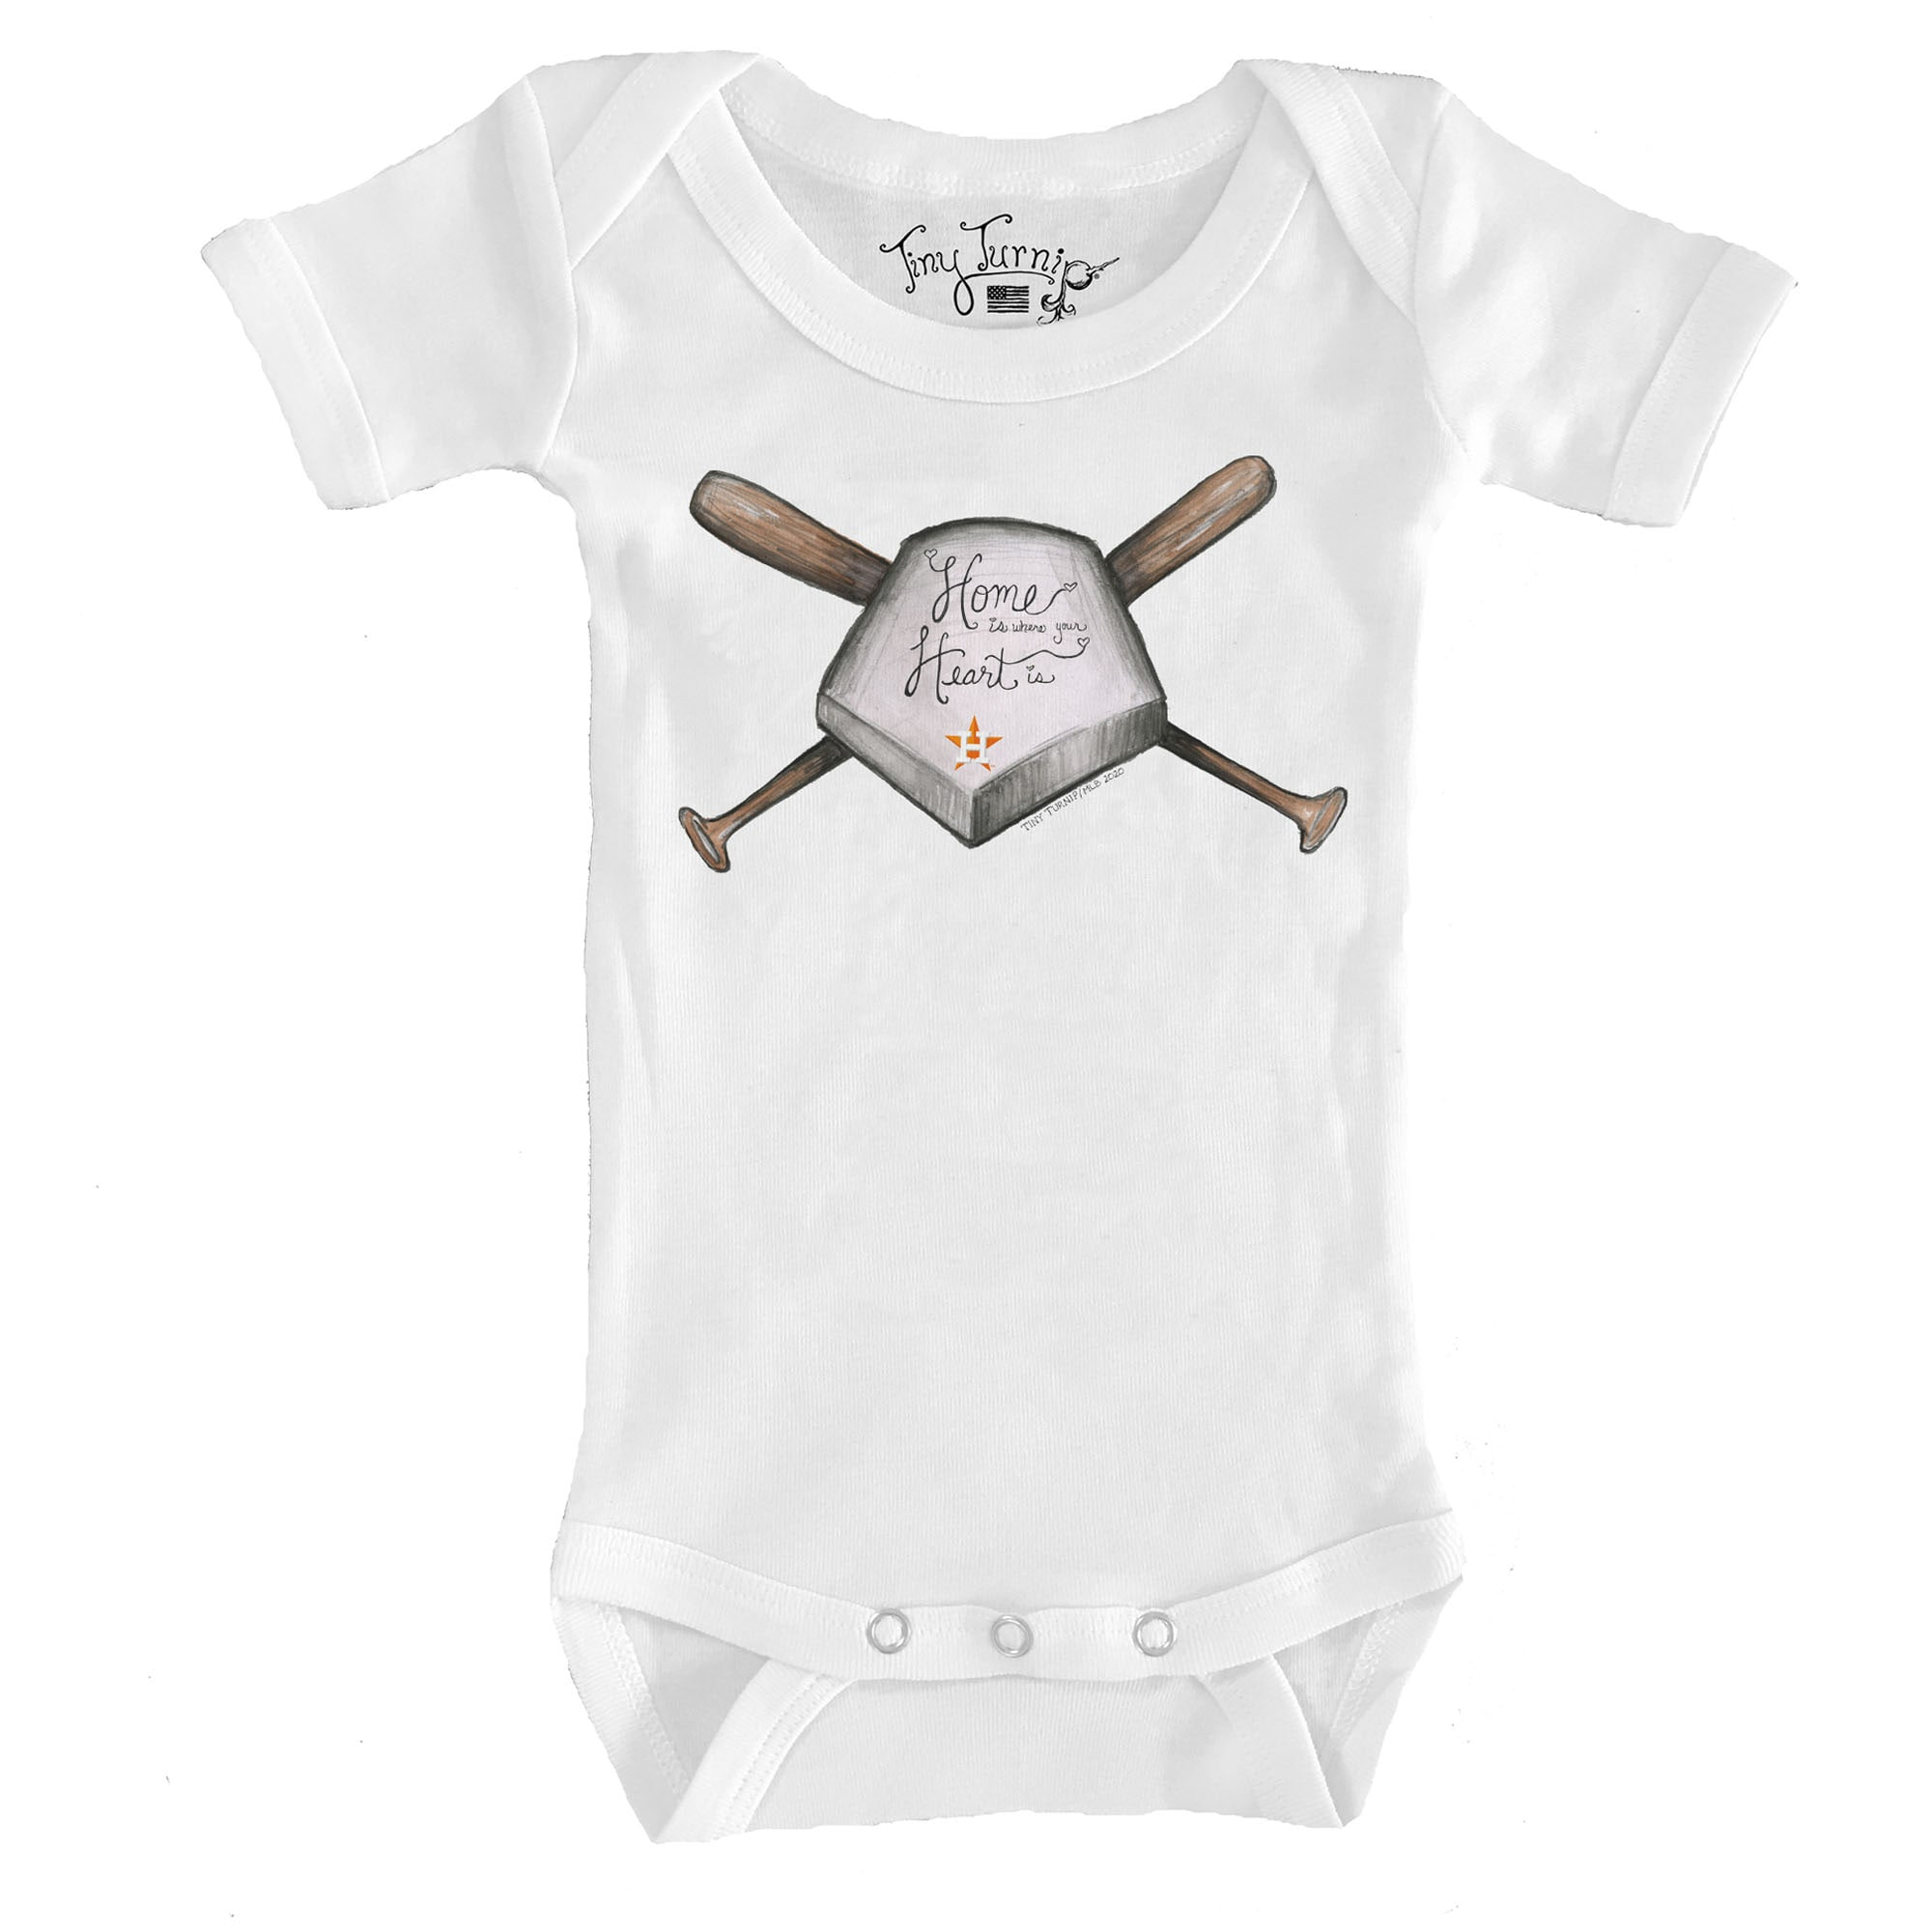 Houston Astros Tiny Turnip Infant Home Is Where Your Heart Is Bodysuit - White